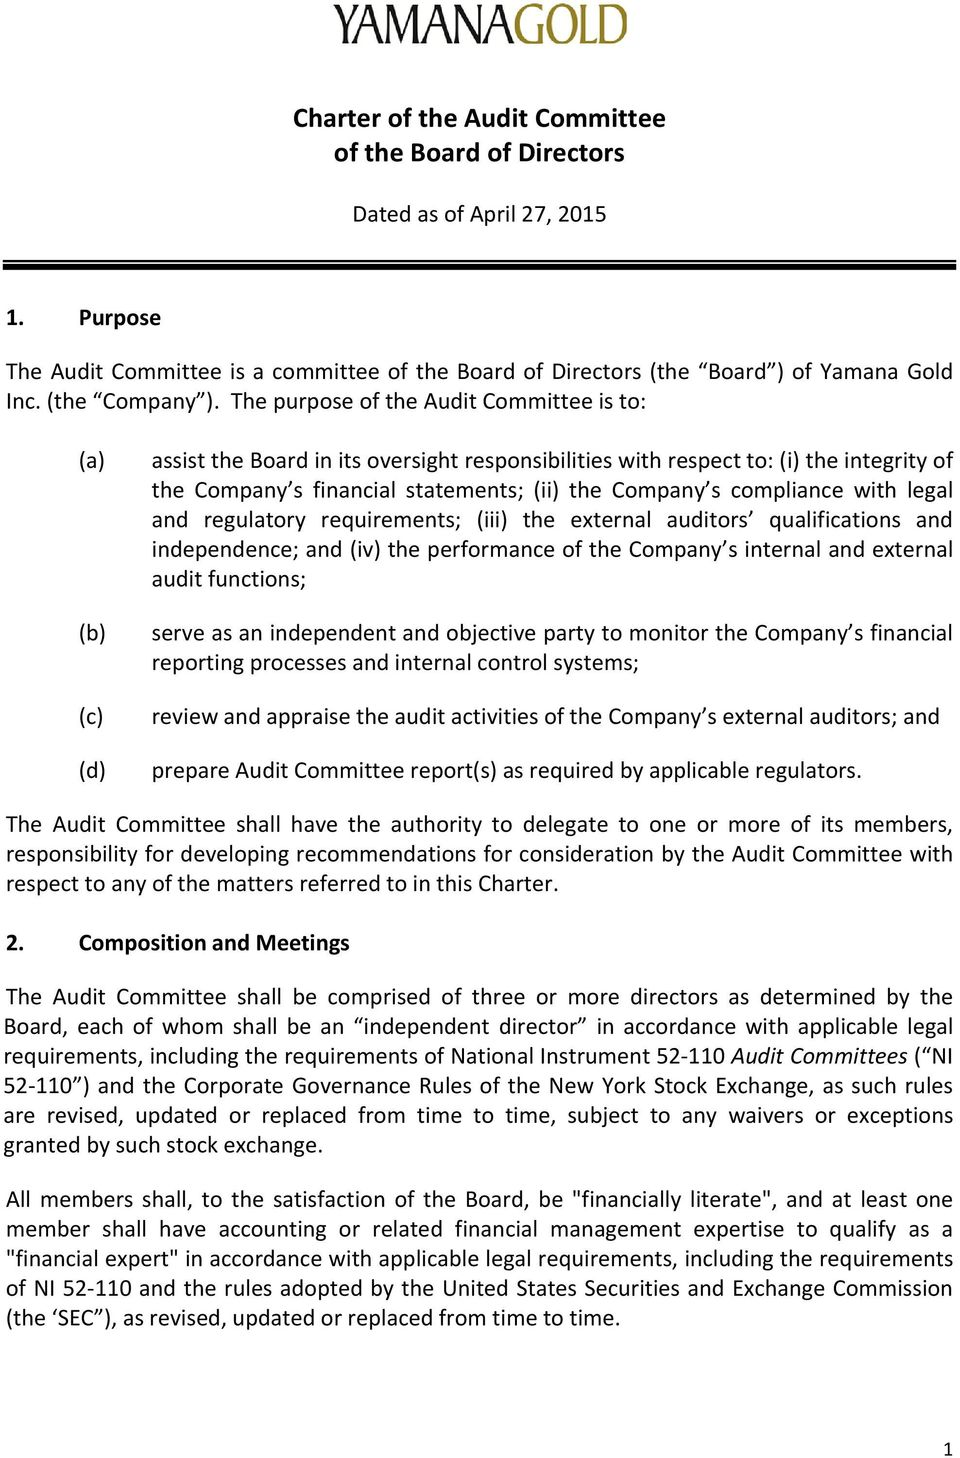 The purpose of the Audit Committee is to: (a) (b) (c) (d) assist the Board in its oversight responsibilities with respect to: (i) the integrity of the Company s financial statements; (ii) the Company